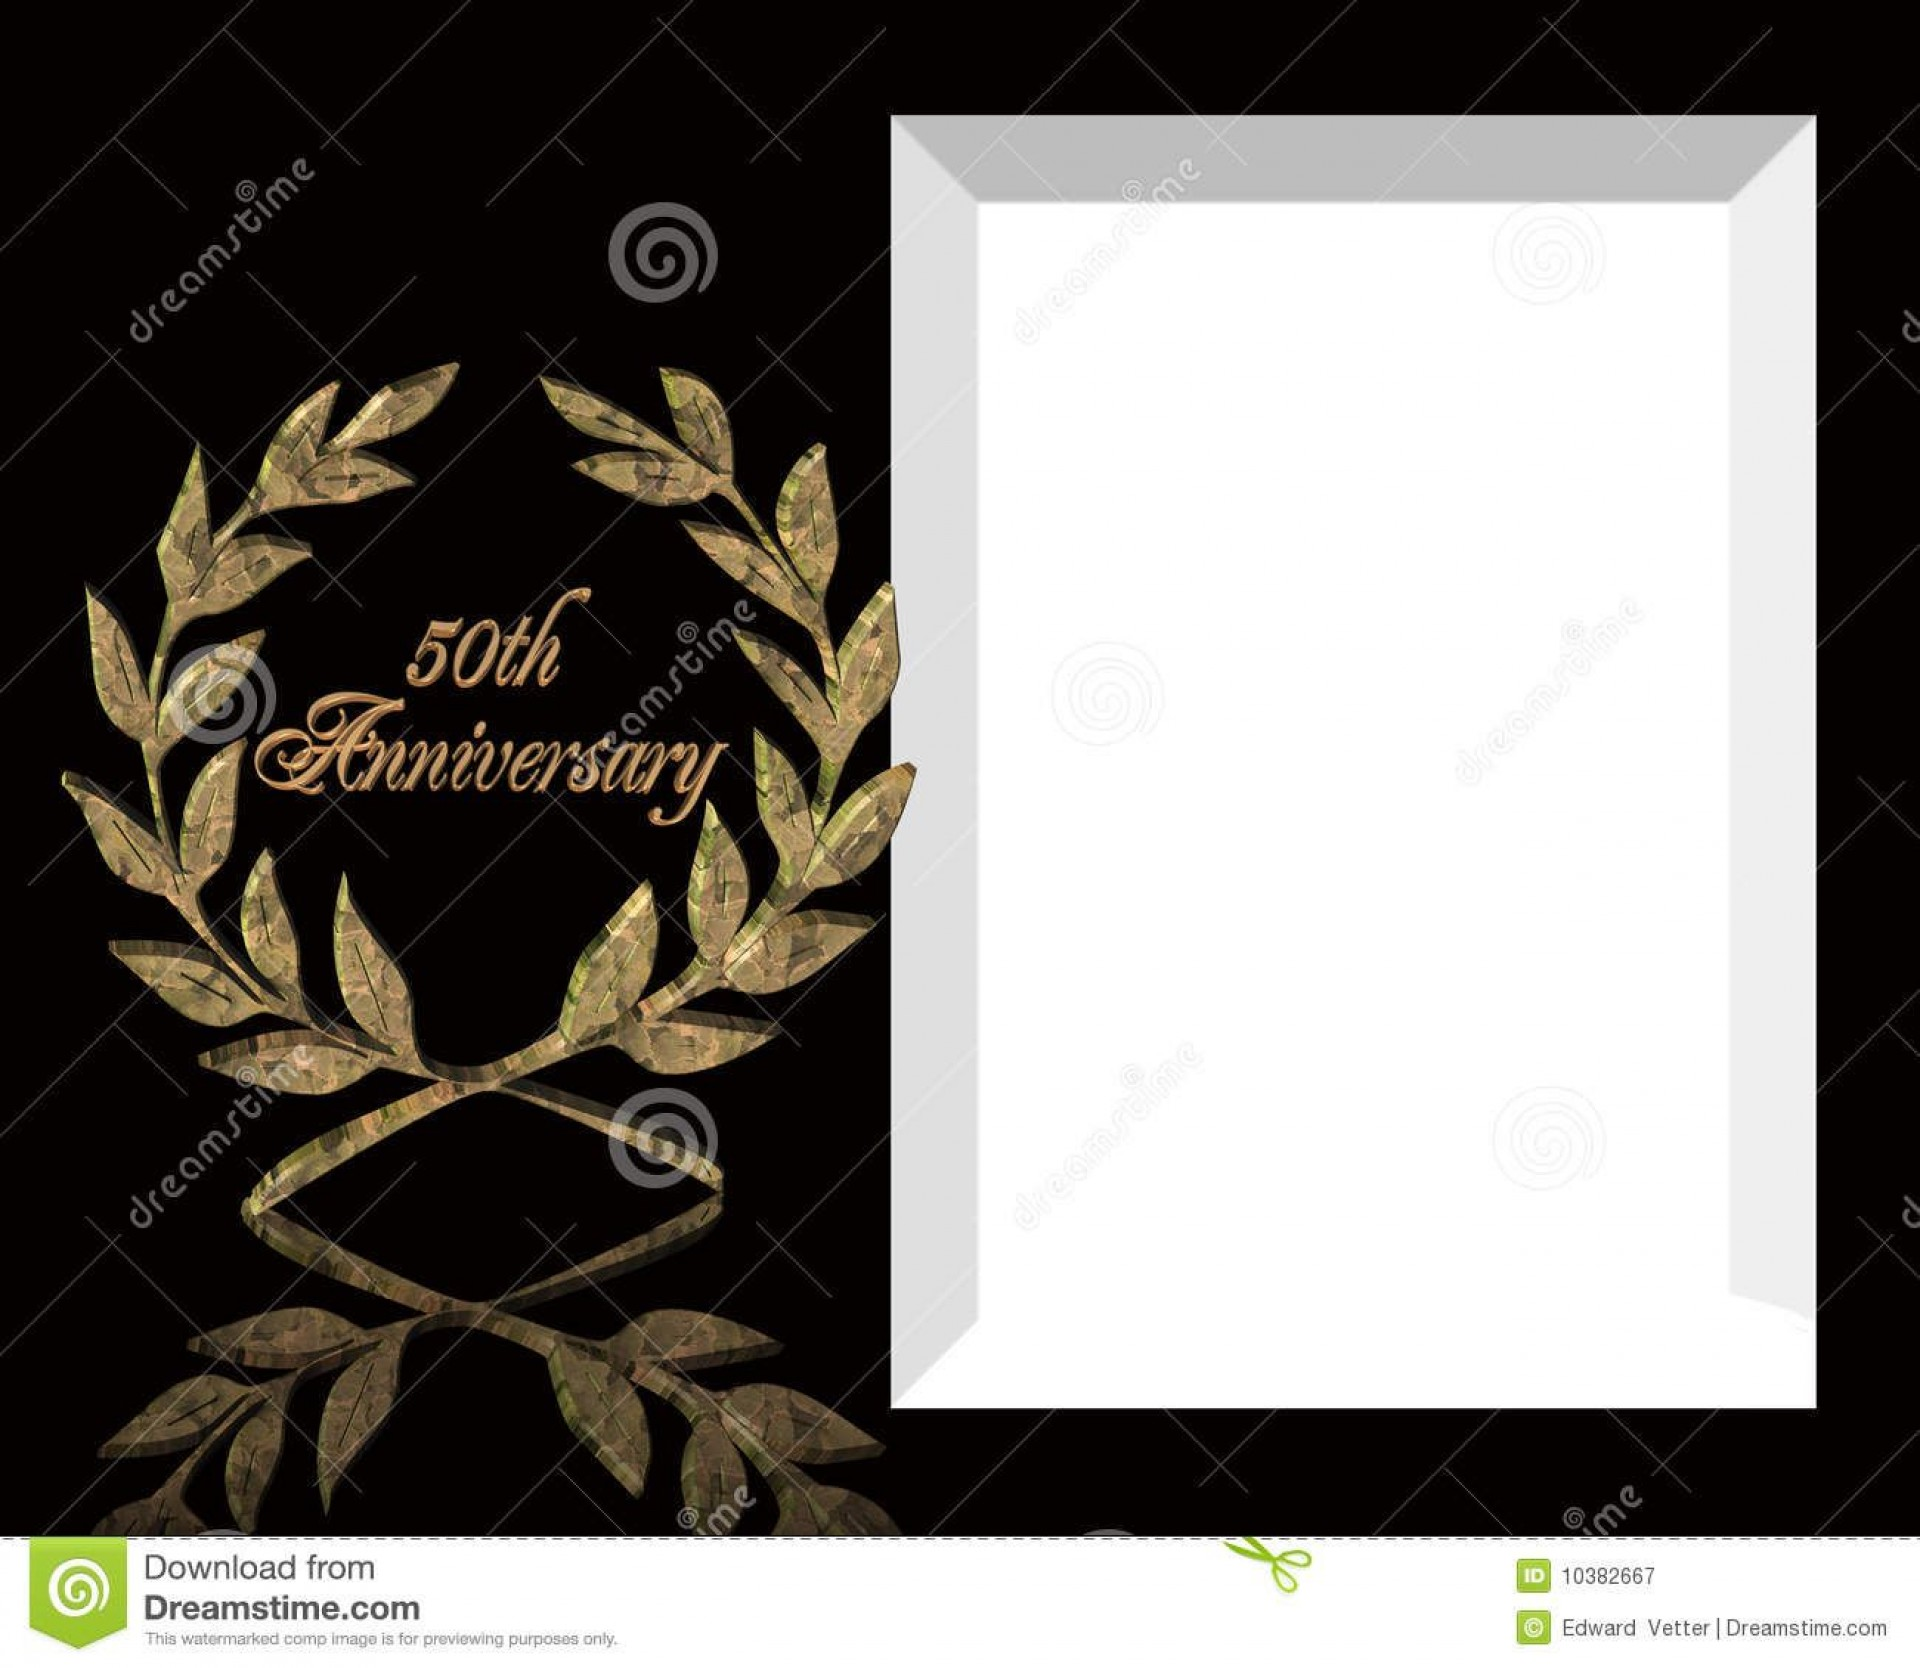 006 Fantastic 50th Anniversary Invitation Template Free Highest Quality  For Word Golden Wedding Download1920